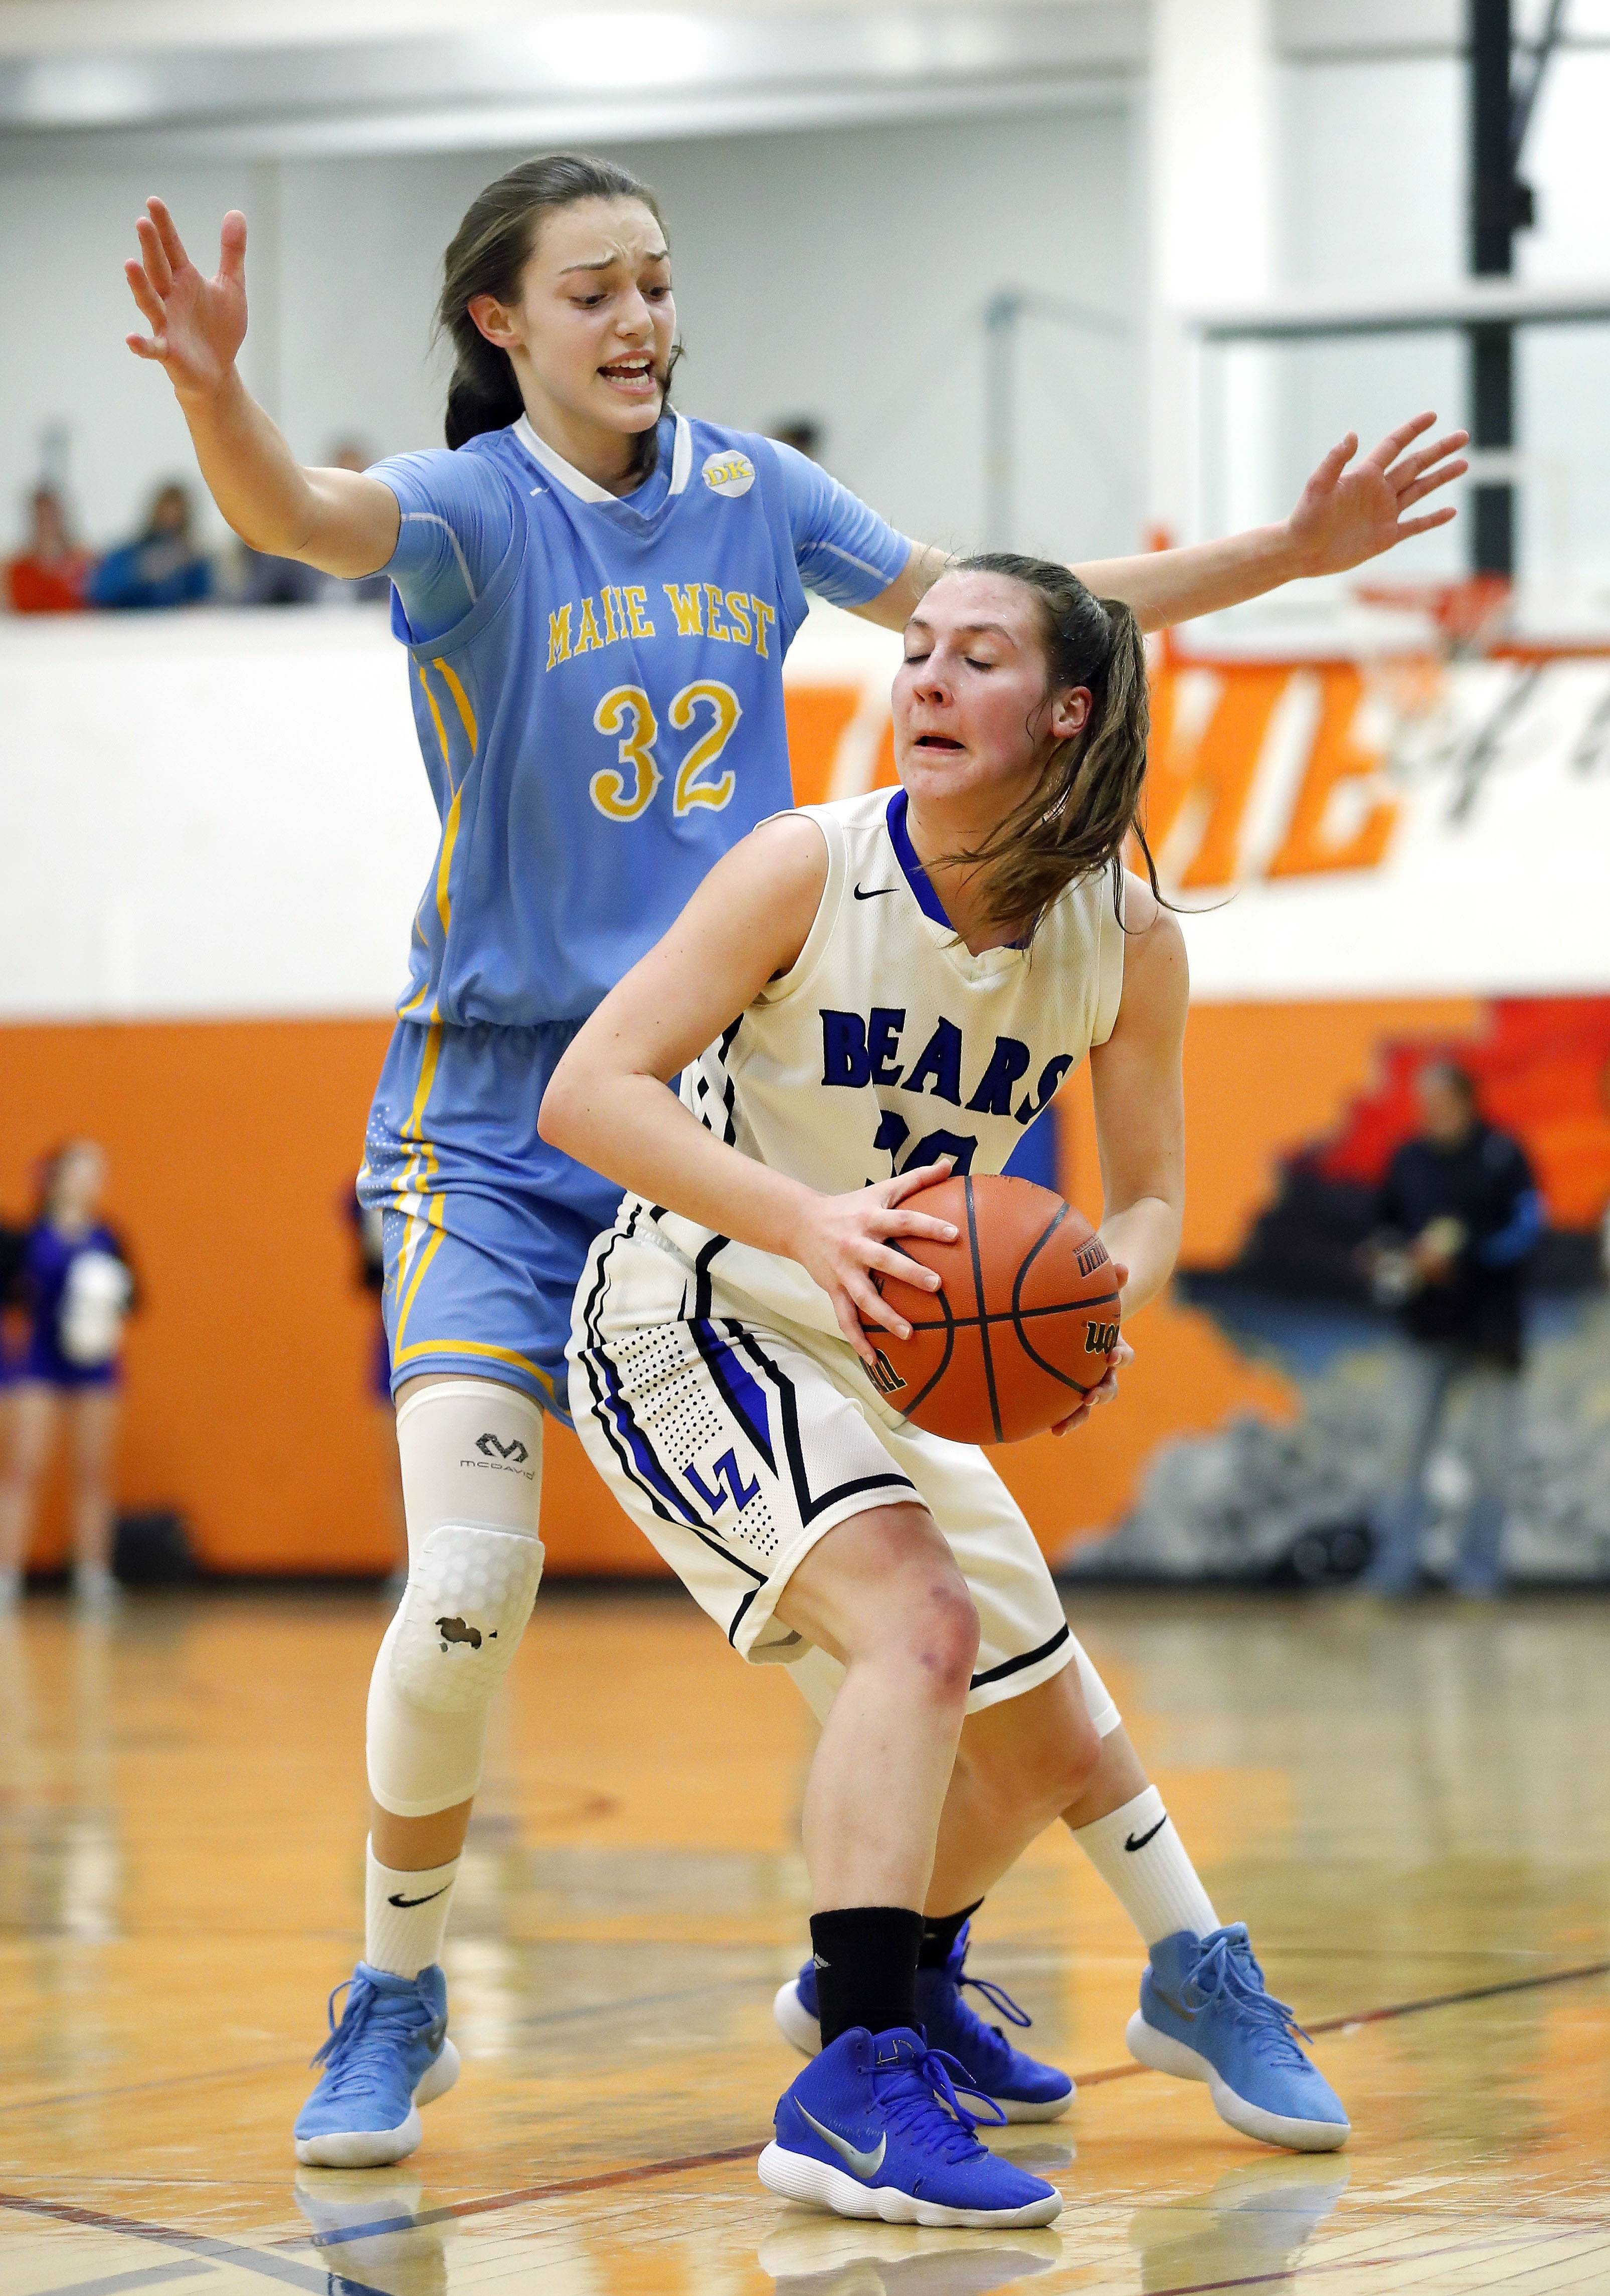 Maine West's Angela Dugalic (32) defends against Lake Zurich's Grace Kinsey during the Class 4A Hersey supersectional in Arlington Heights on Monday.